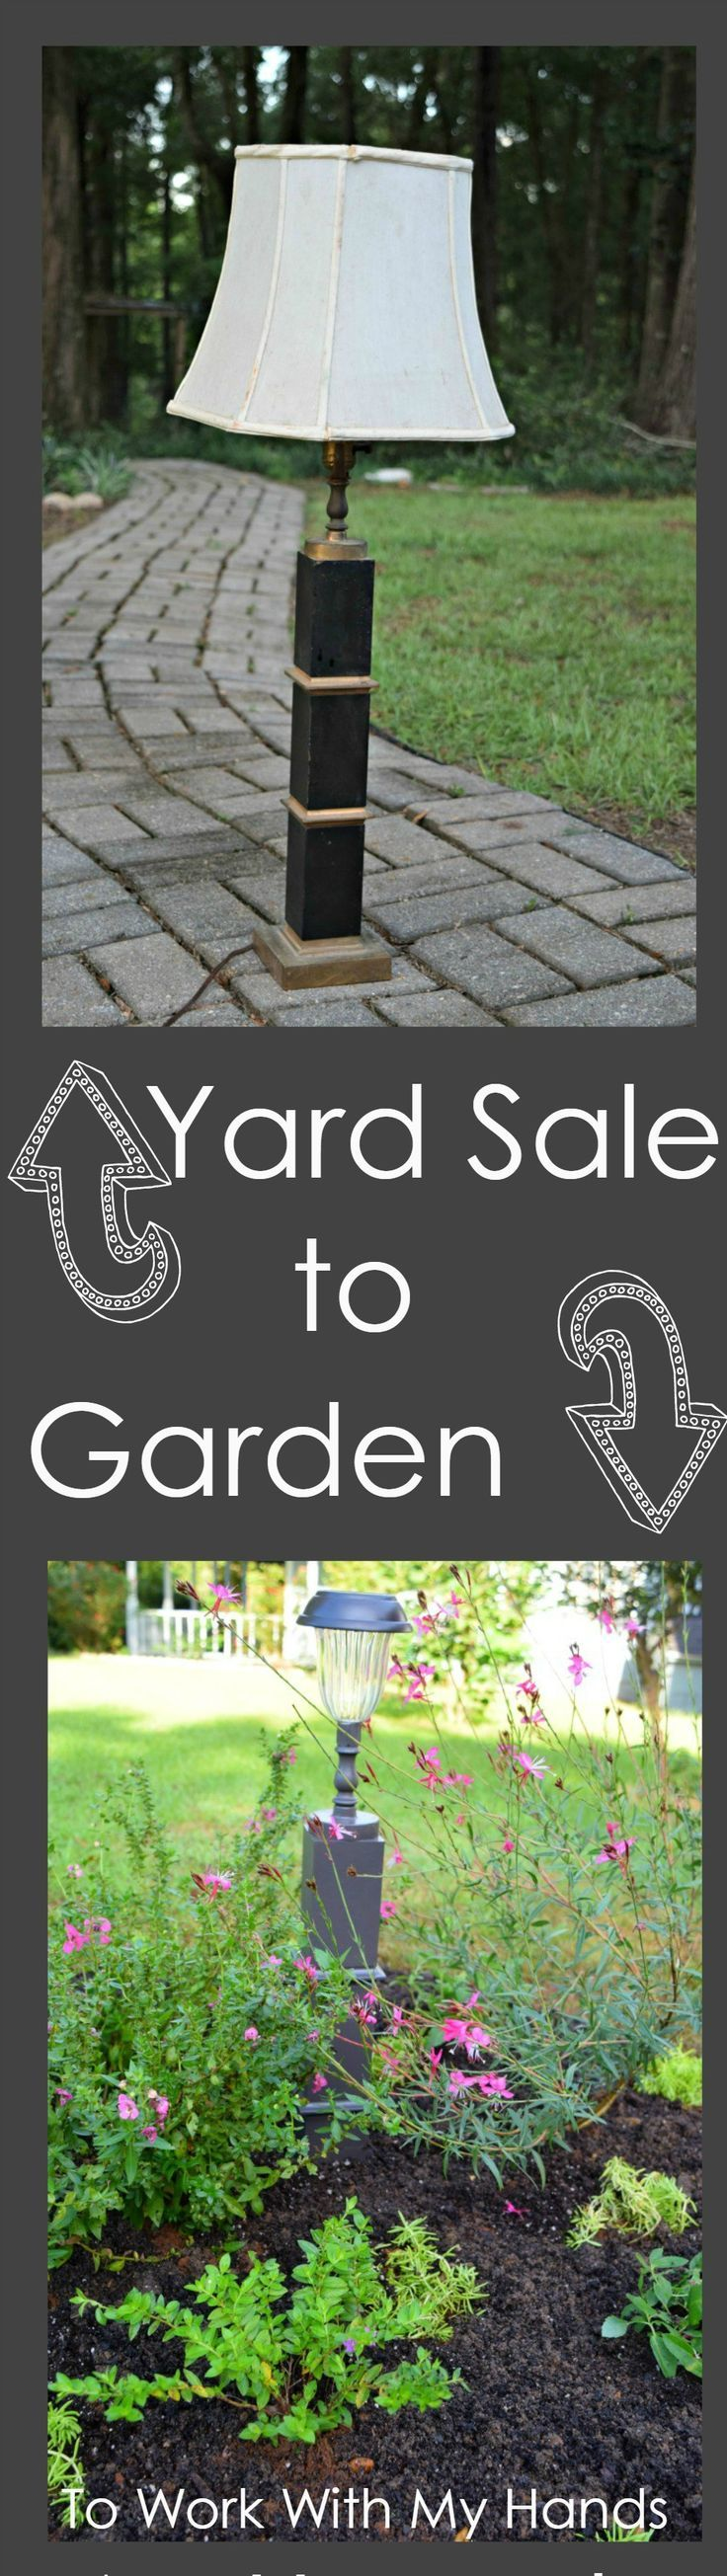 1044 best Gardening and Outdoor Projects images on Pinterest ...